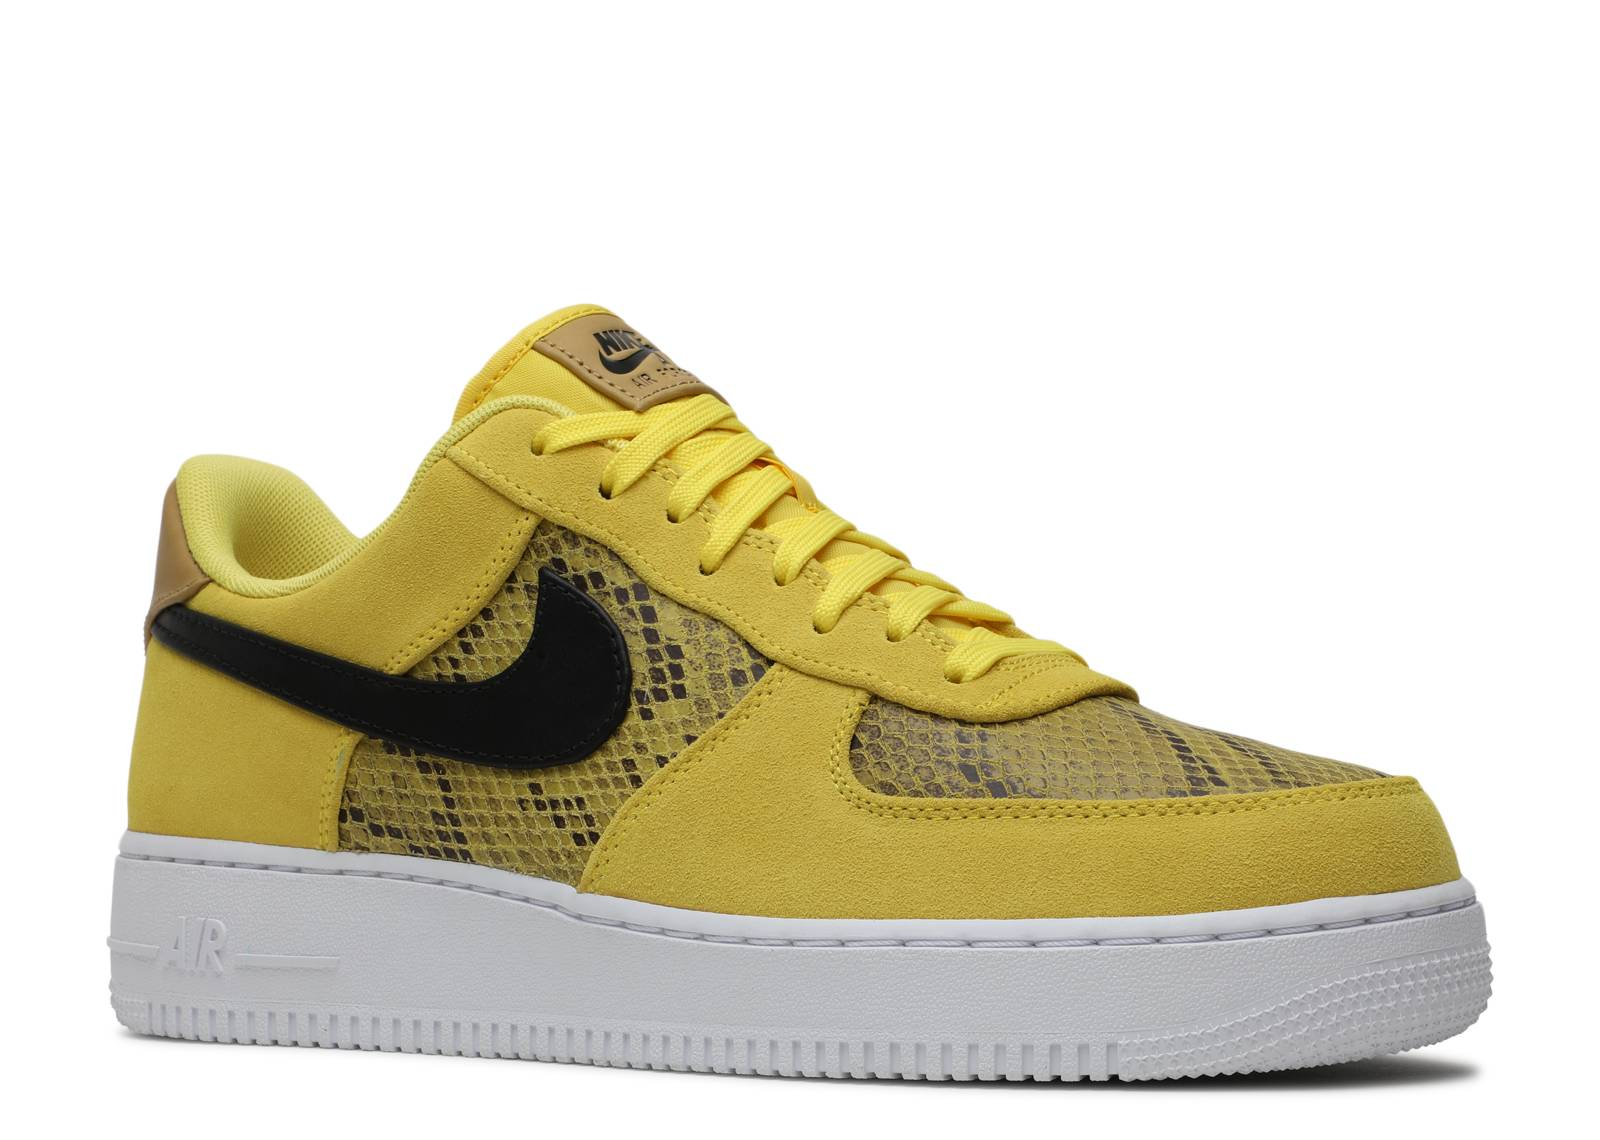 Air Force 1 Low Yellow Snakeskin Nike Bq4424 700 Flight Club